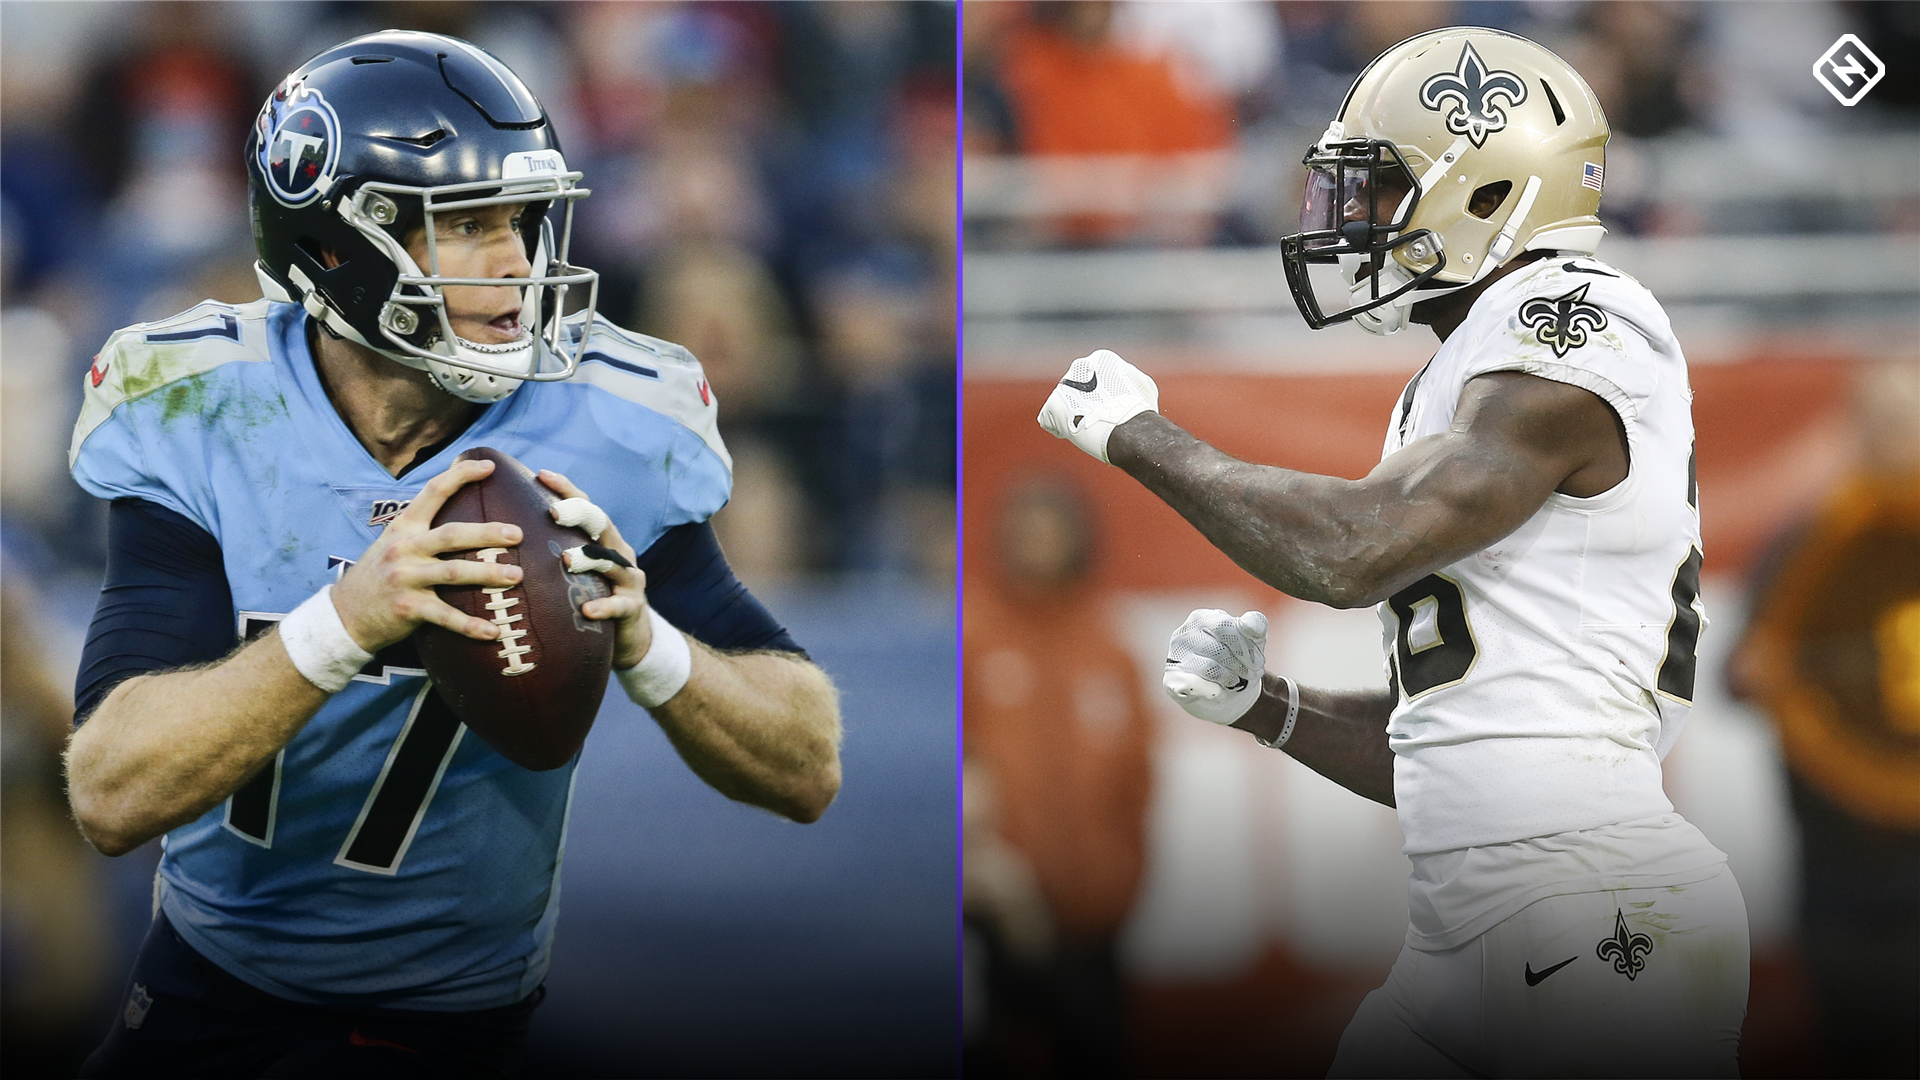 Week 8 FanDuel Picks: NFL DFS lineup advice, strategy for GPP tournaments